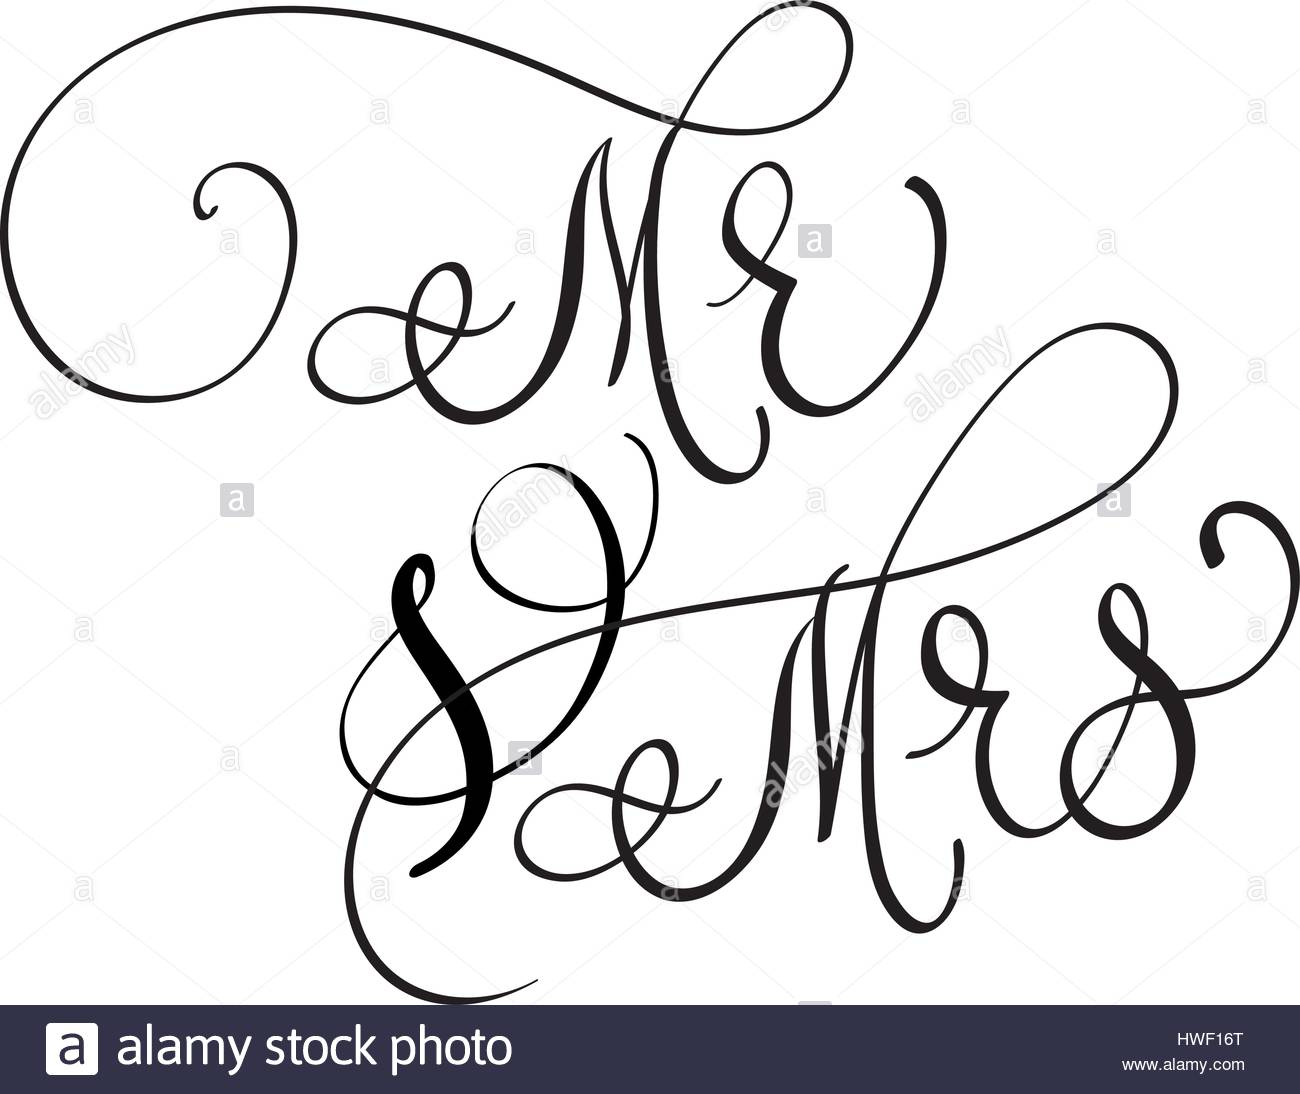 1300x1094 Vector Mr And Mrs Text On White Background. Hand Drawn Calligraphy